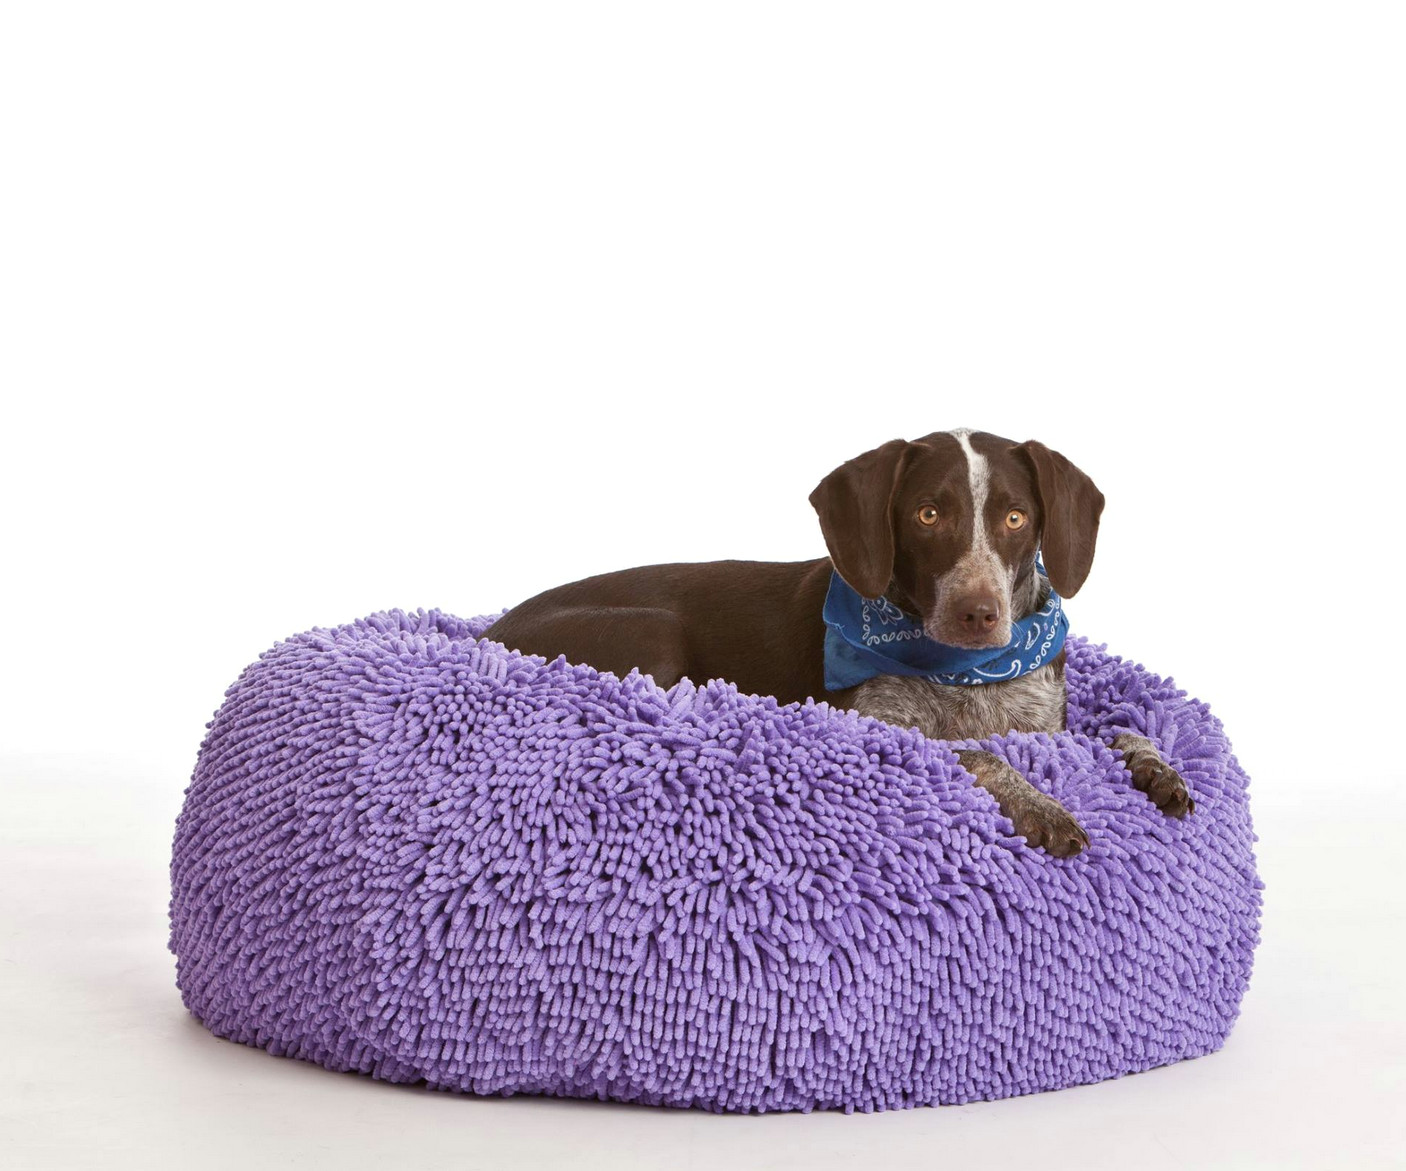 my dog loves this bean bag he lounges on it most of the day and no longer sleeps in the bed with me at night he chooses his bean bag customerreview